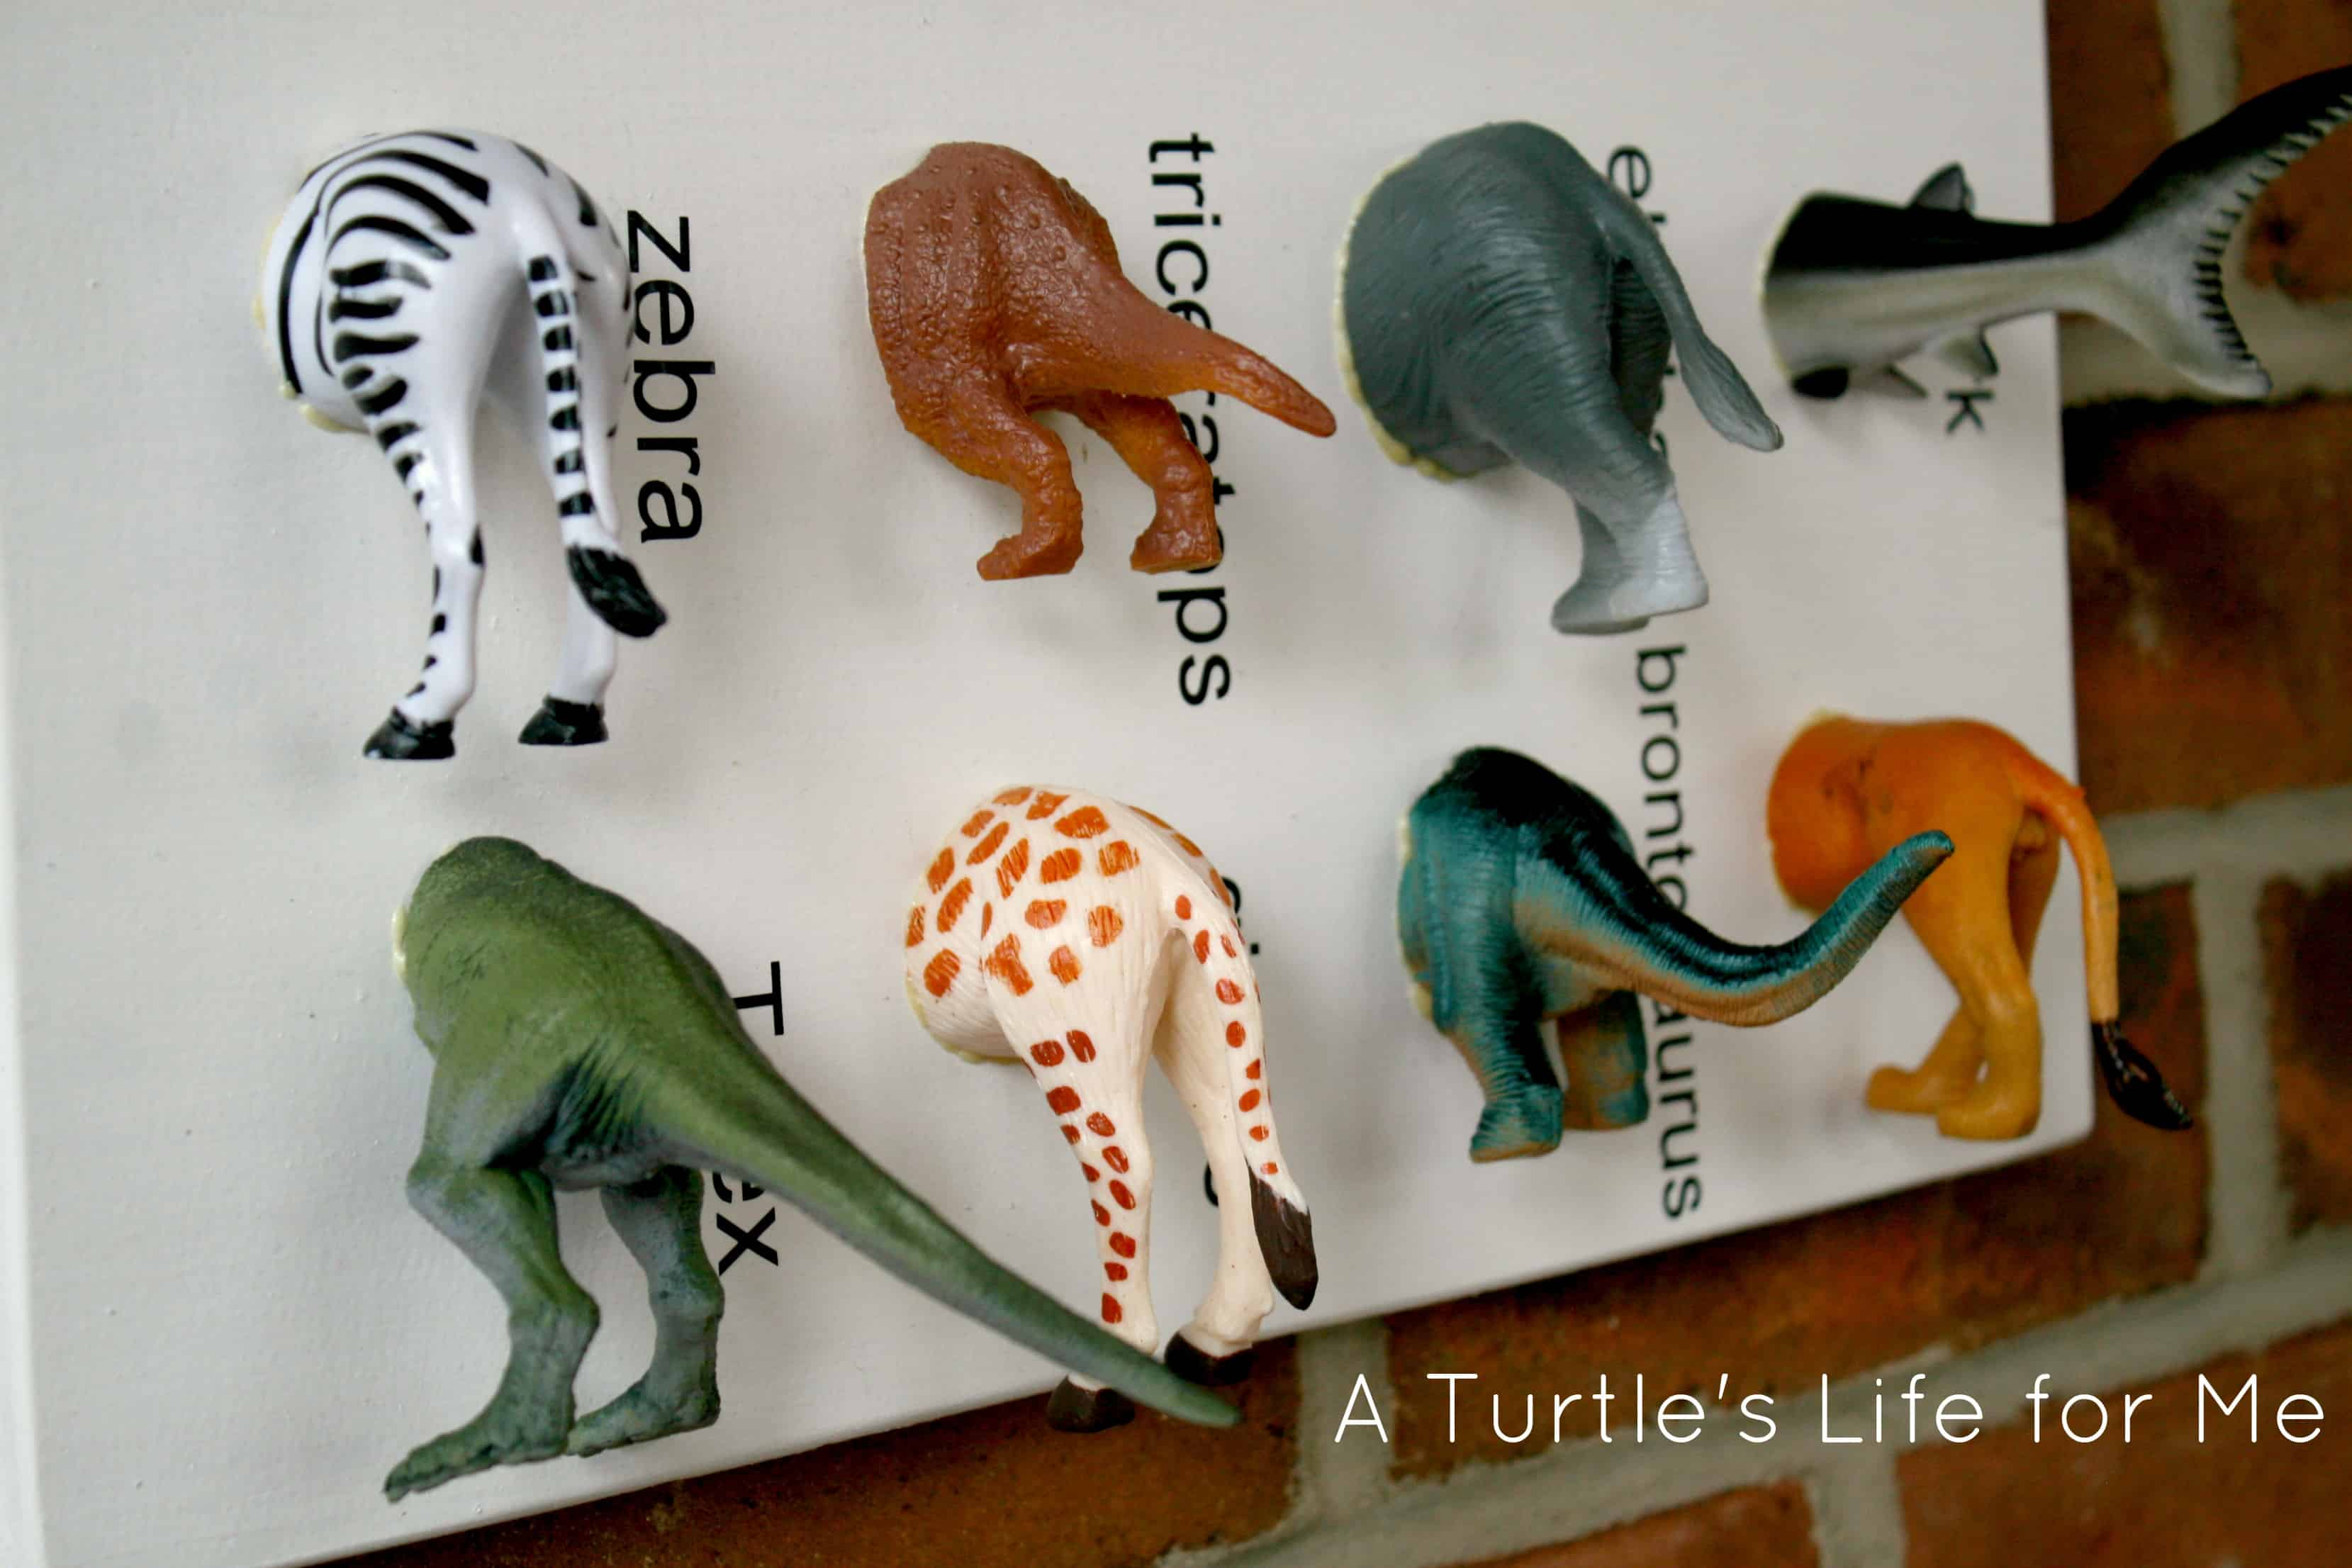 Animal specimen art a turtle 39 s life for me for Easy diy gifts for boys